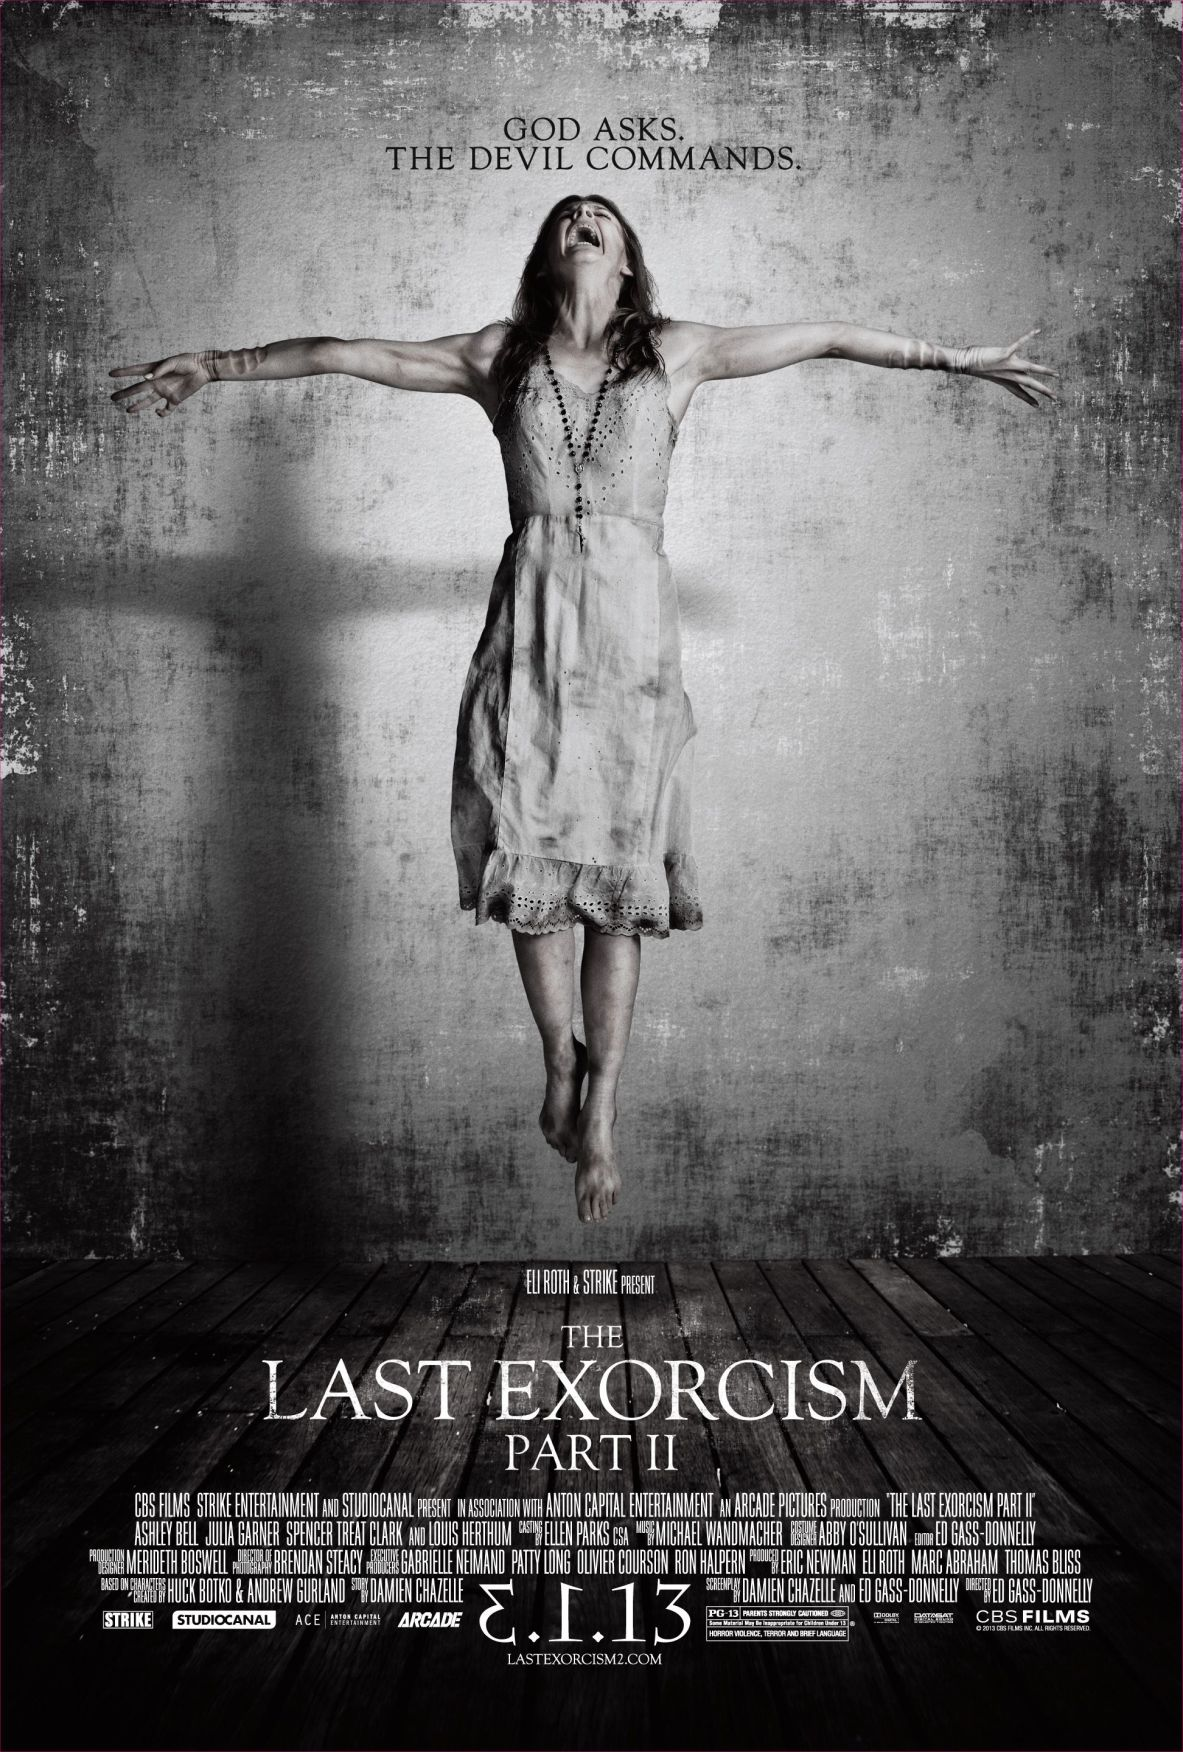 Please, let this be the 'Last Exorcism'